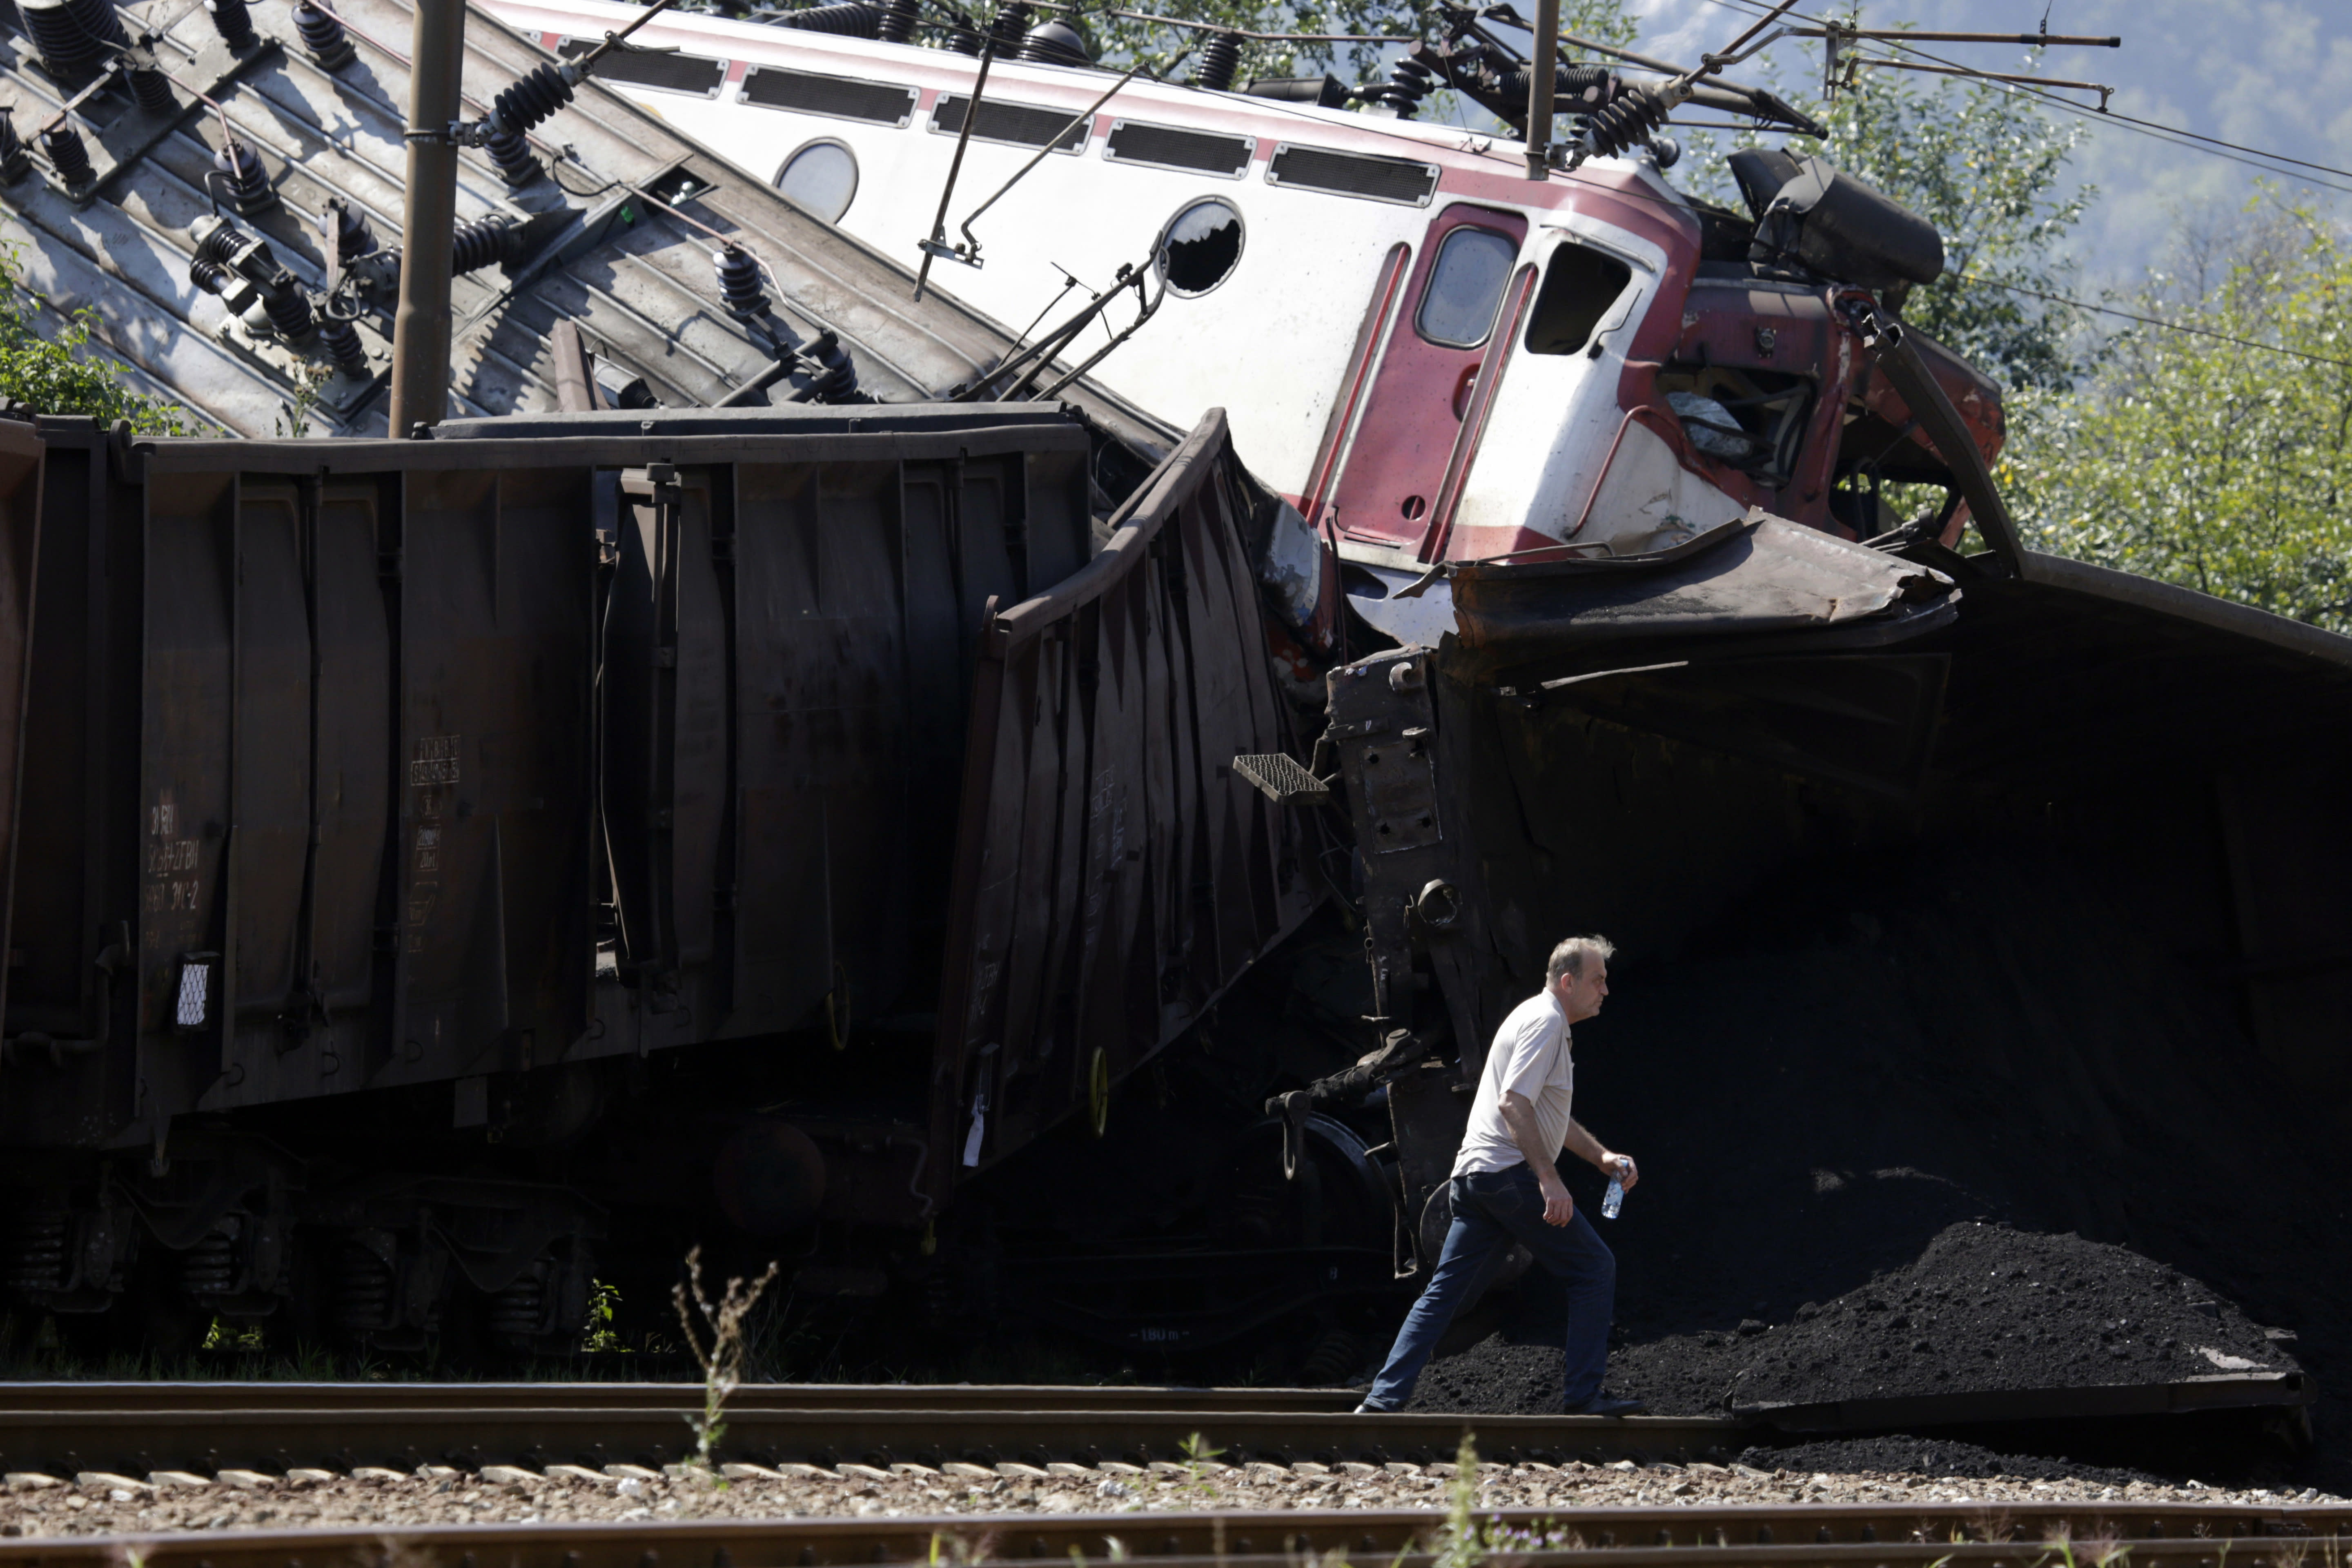 Man walks near the site where two cargo trains collided at the train station in Jablanica, about 80 kms south of Sarajevo, Bosnia, Thursday, Aug. 23, 2018. Police say two people have been killed and one was seriously injured in a head-on freight train collision in southern Bosnia, early Thursday.(AP Photo/Amel Emric)